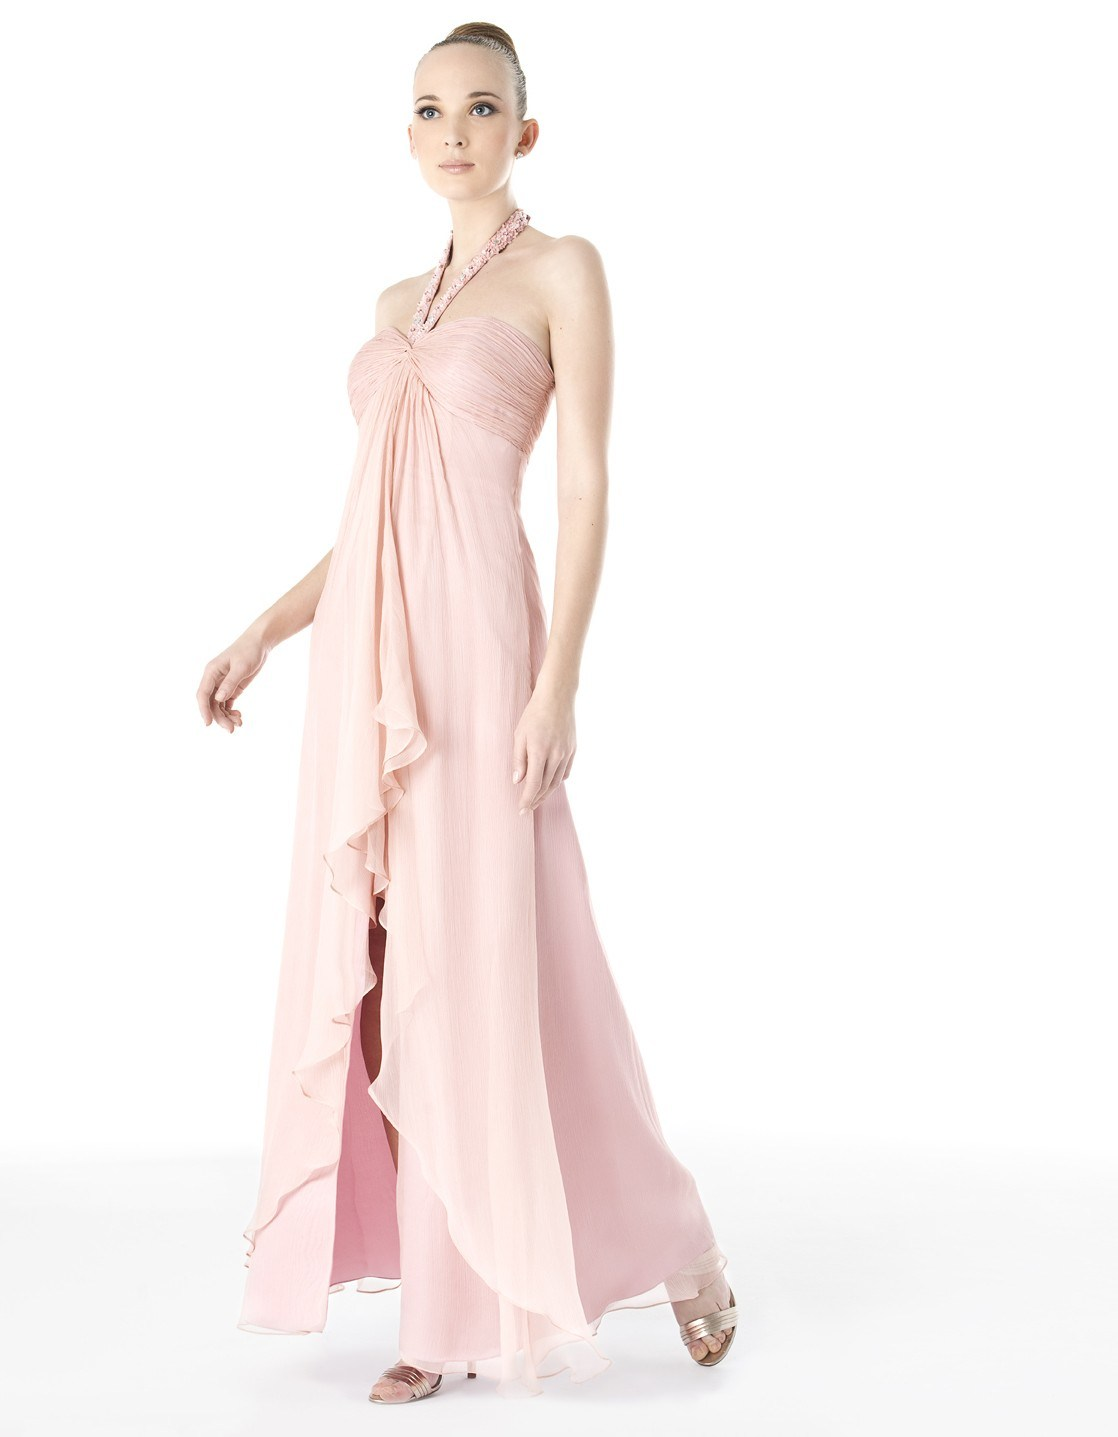 LIGHT PINK GOWNS